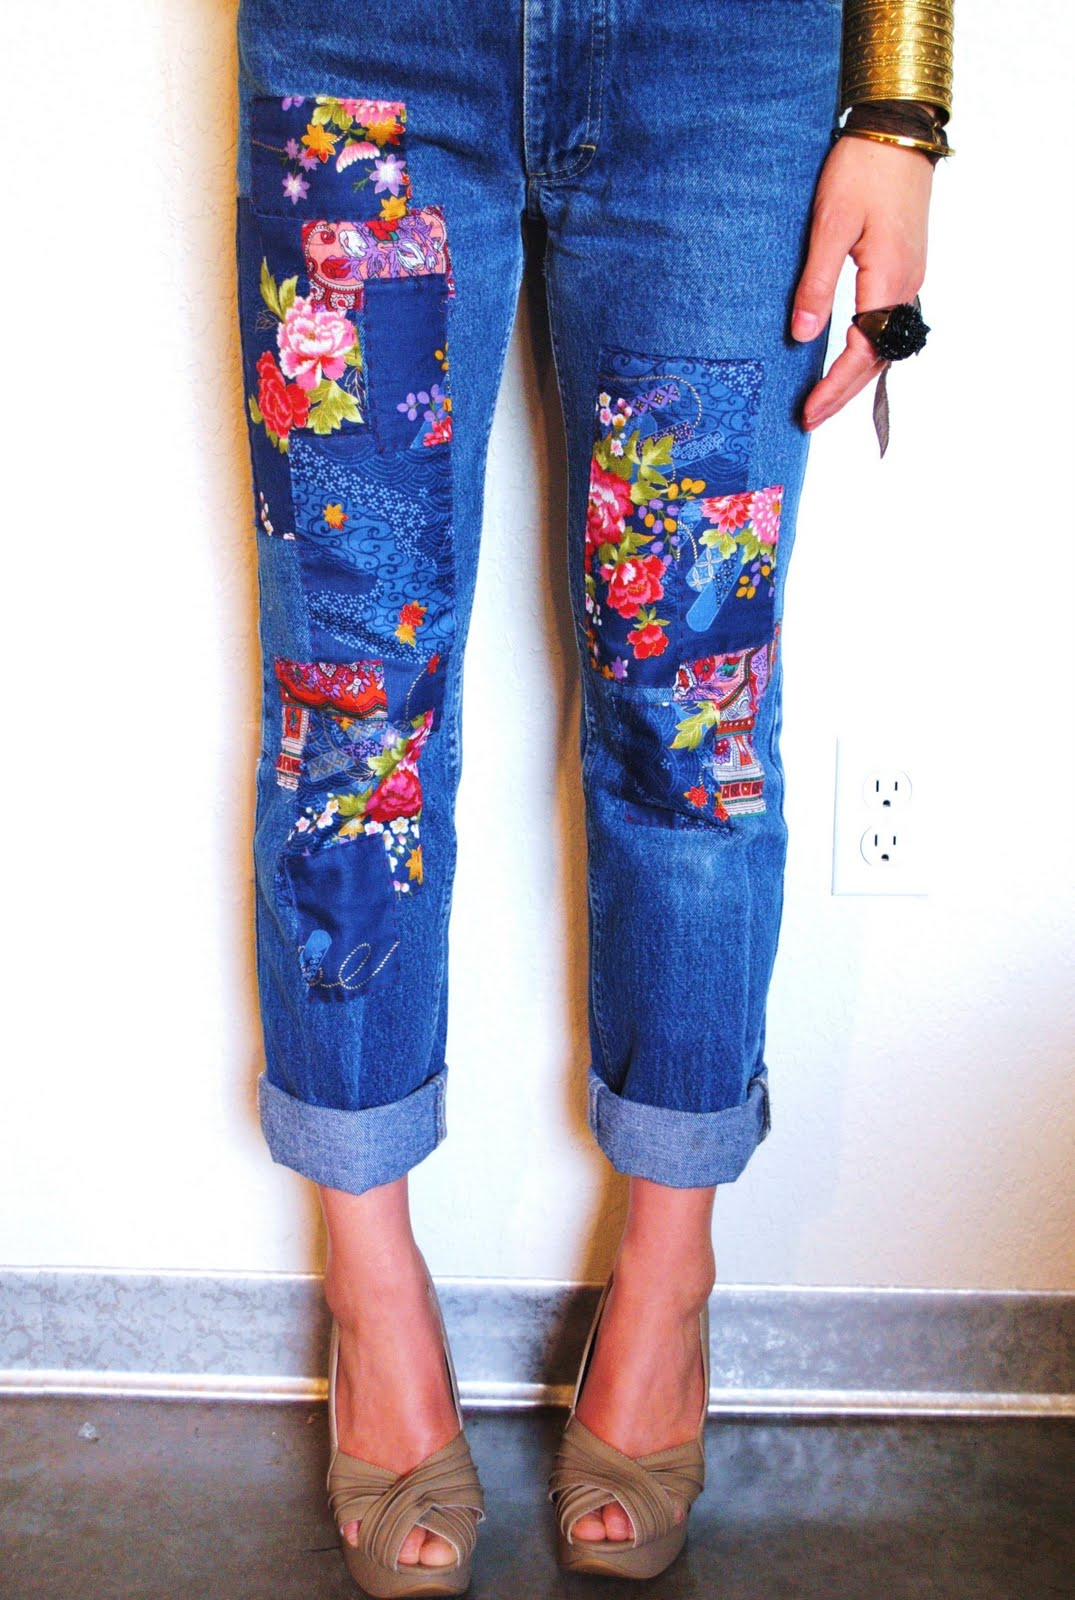 You searched for: patched jeans! Etsy is the home to thousands of handmade, vintage, and one-of-a-kind products and gifts related to your search. No matter what you're looking for or where you are in the world, our global marketplace of sellers can help you find unique and affordable options. Let's get started!